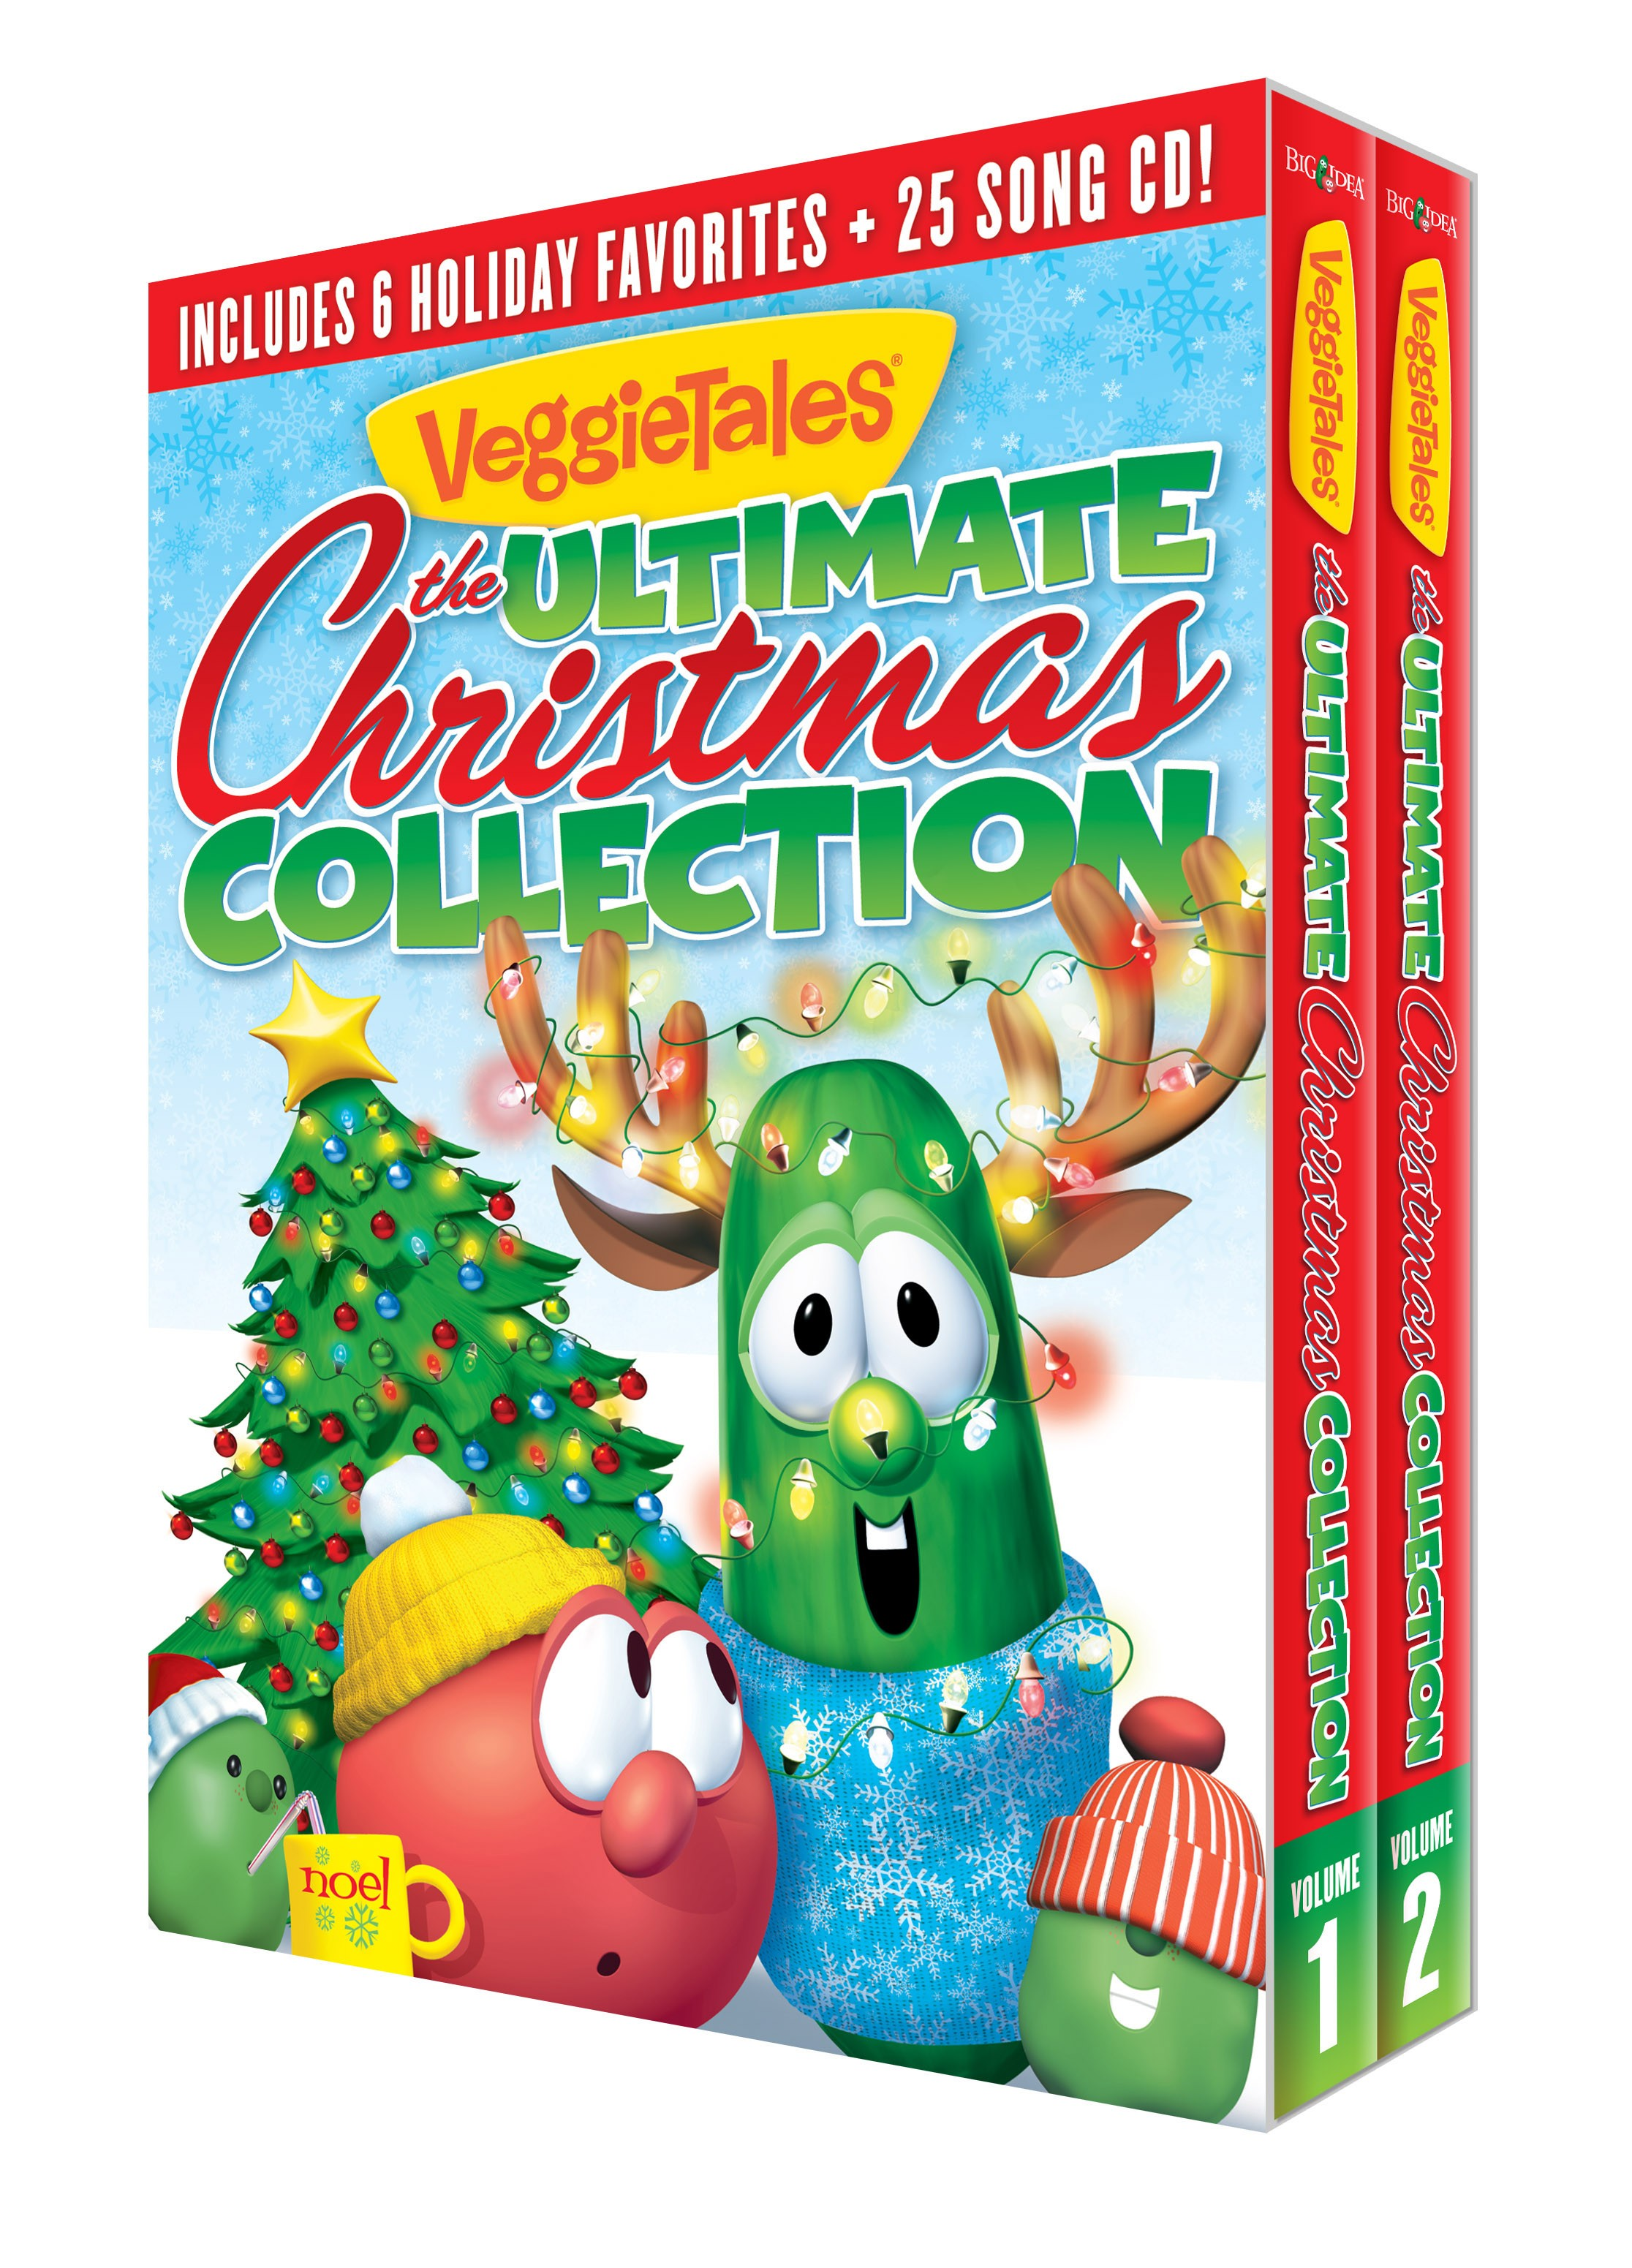 Win $75 in Veggie Tales Videos and DVDs